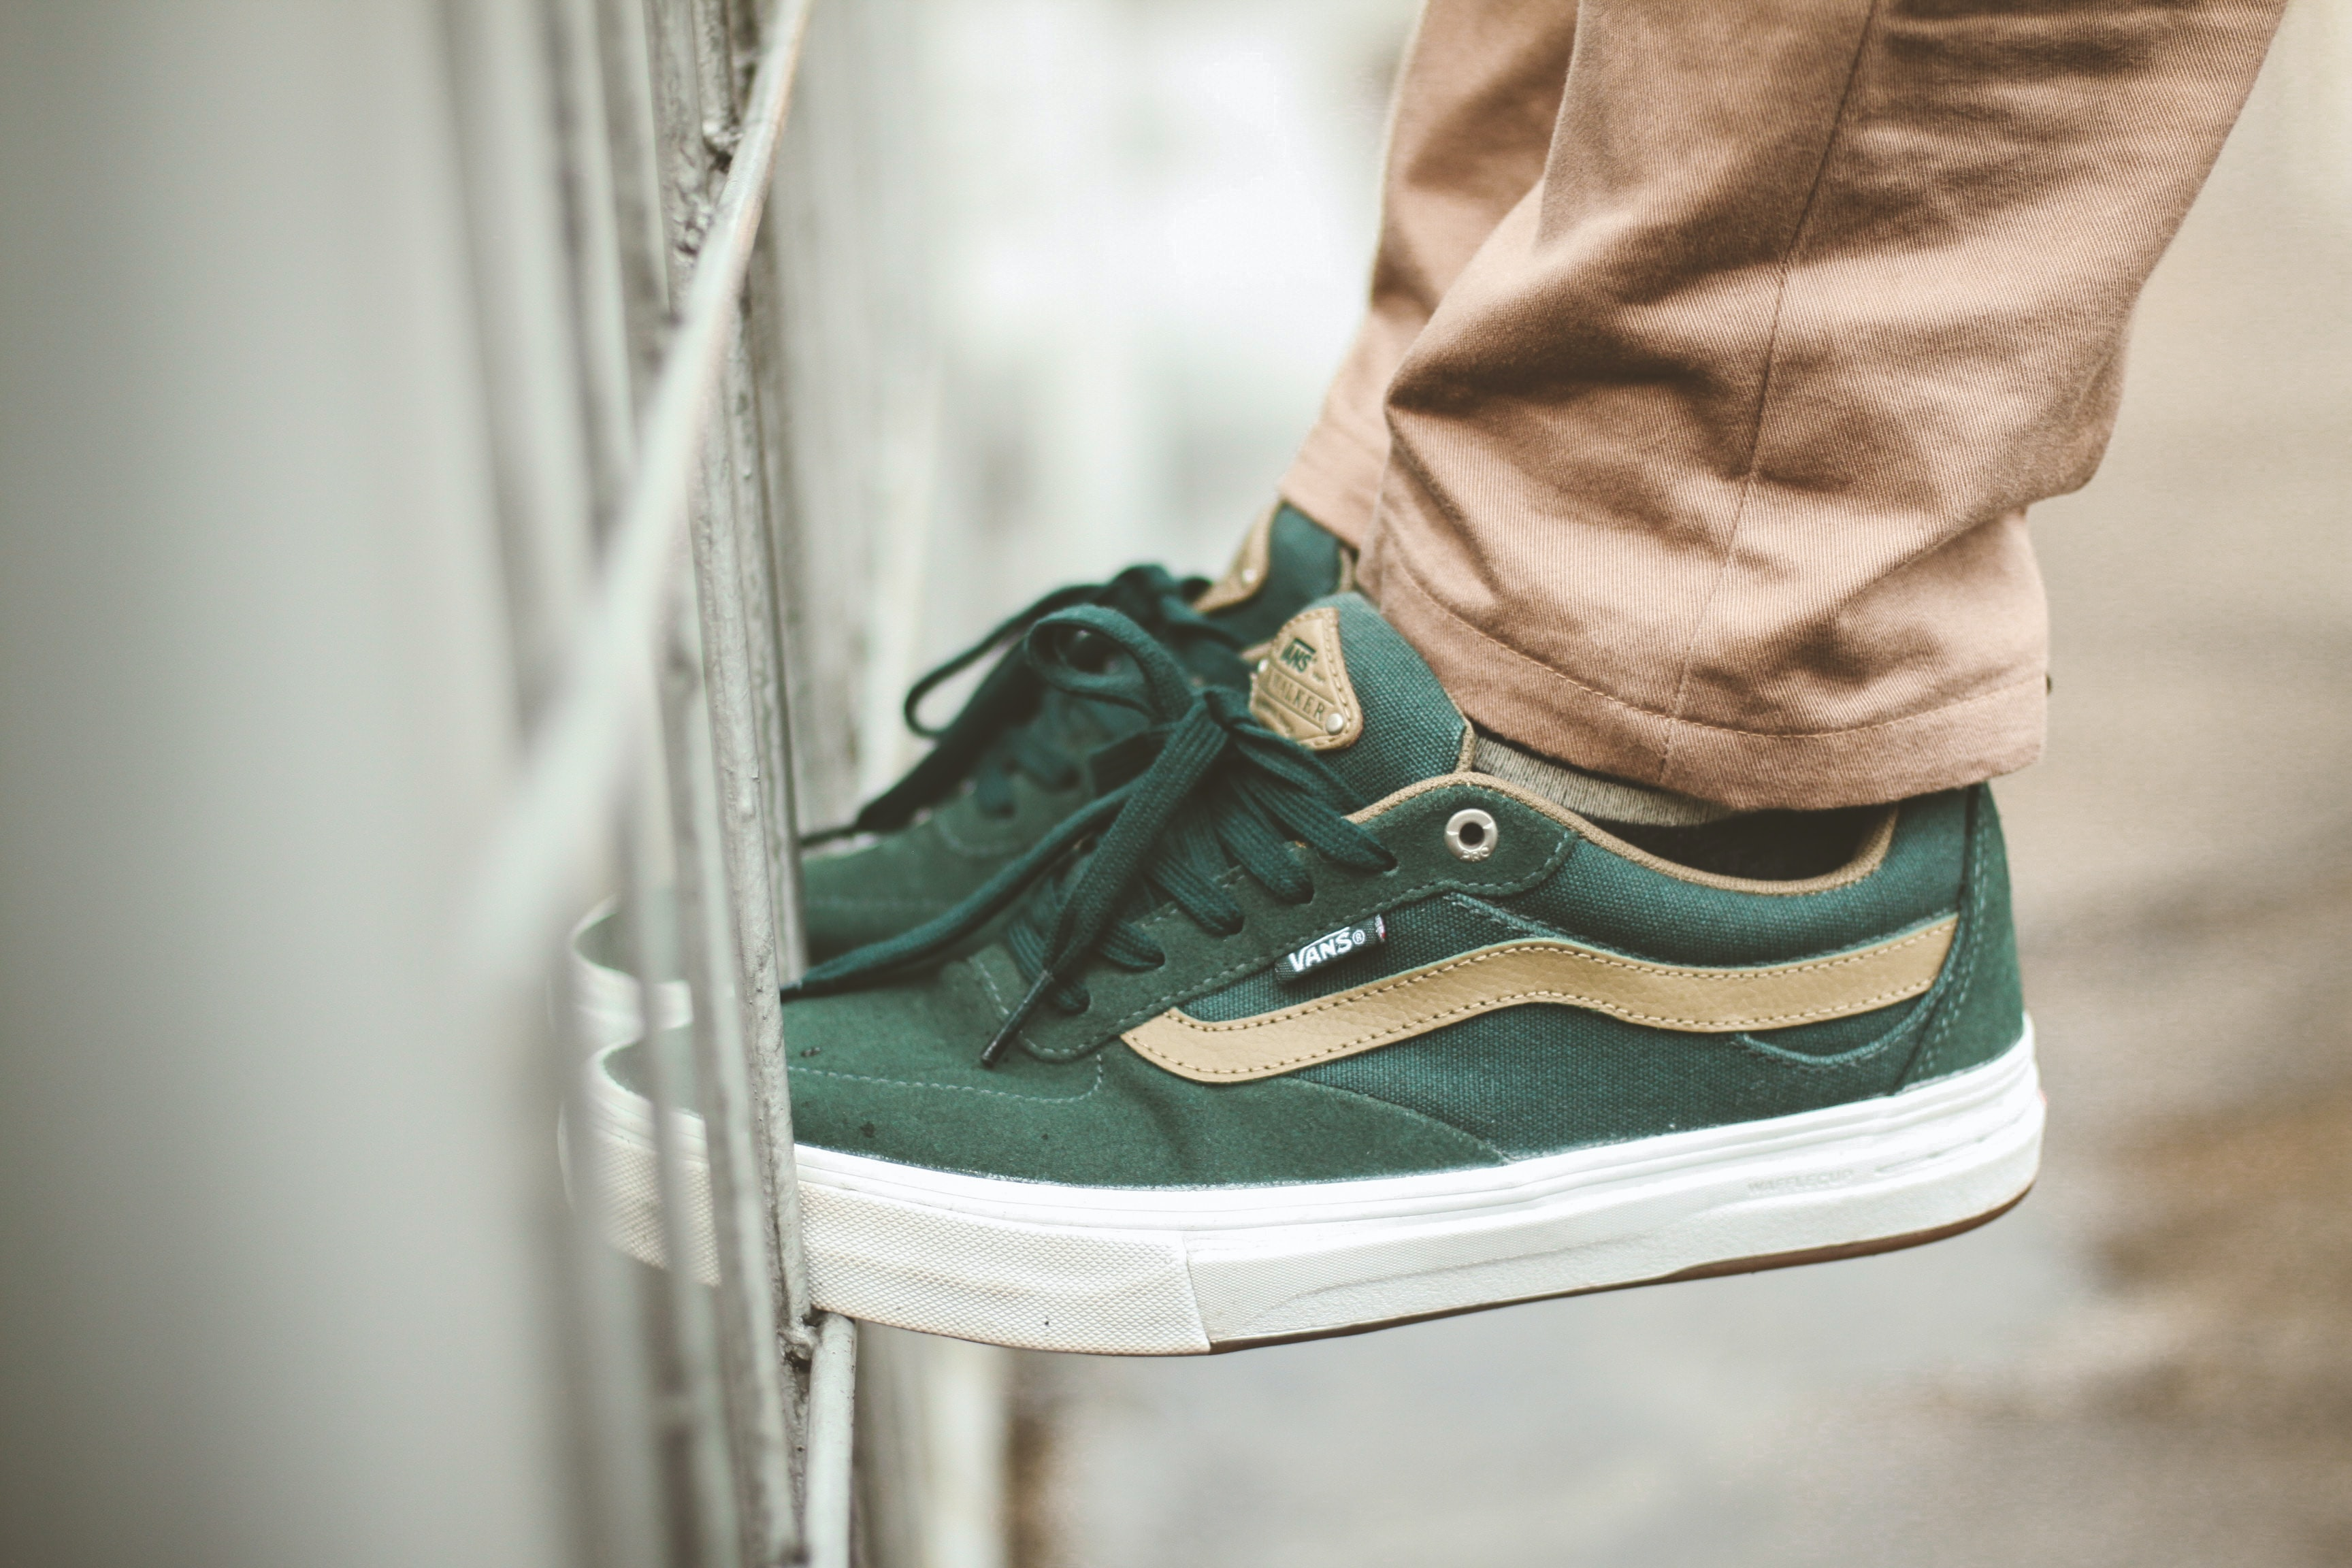 person wearing green Vans low-top sneakers